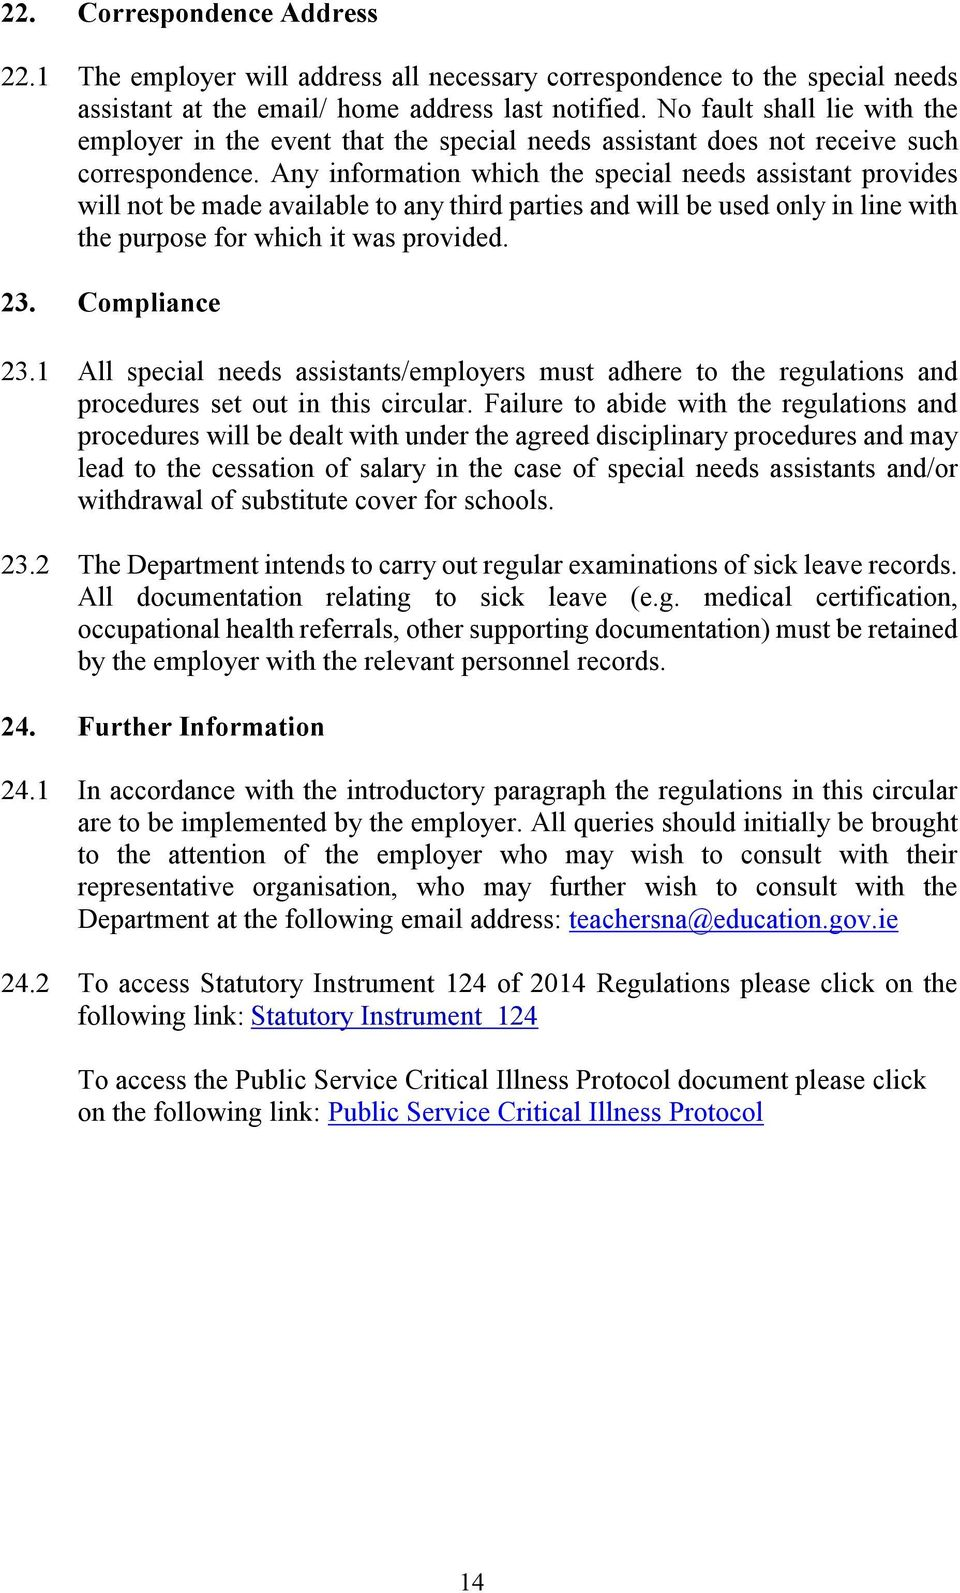 Any information which the special needs assistant provides will not be made available to any third parties and will be used only in line with the purpose for which it was provided. 23. Compliance 23.